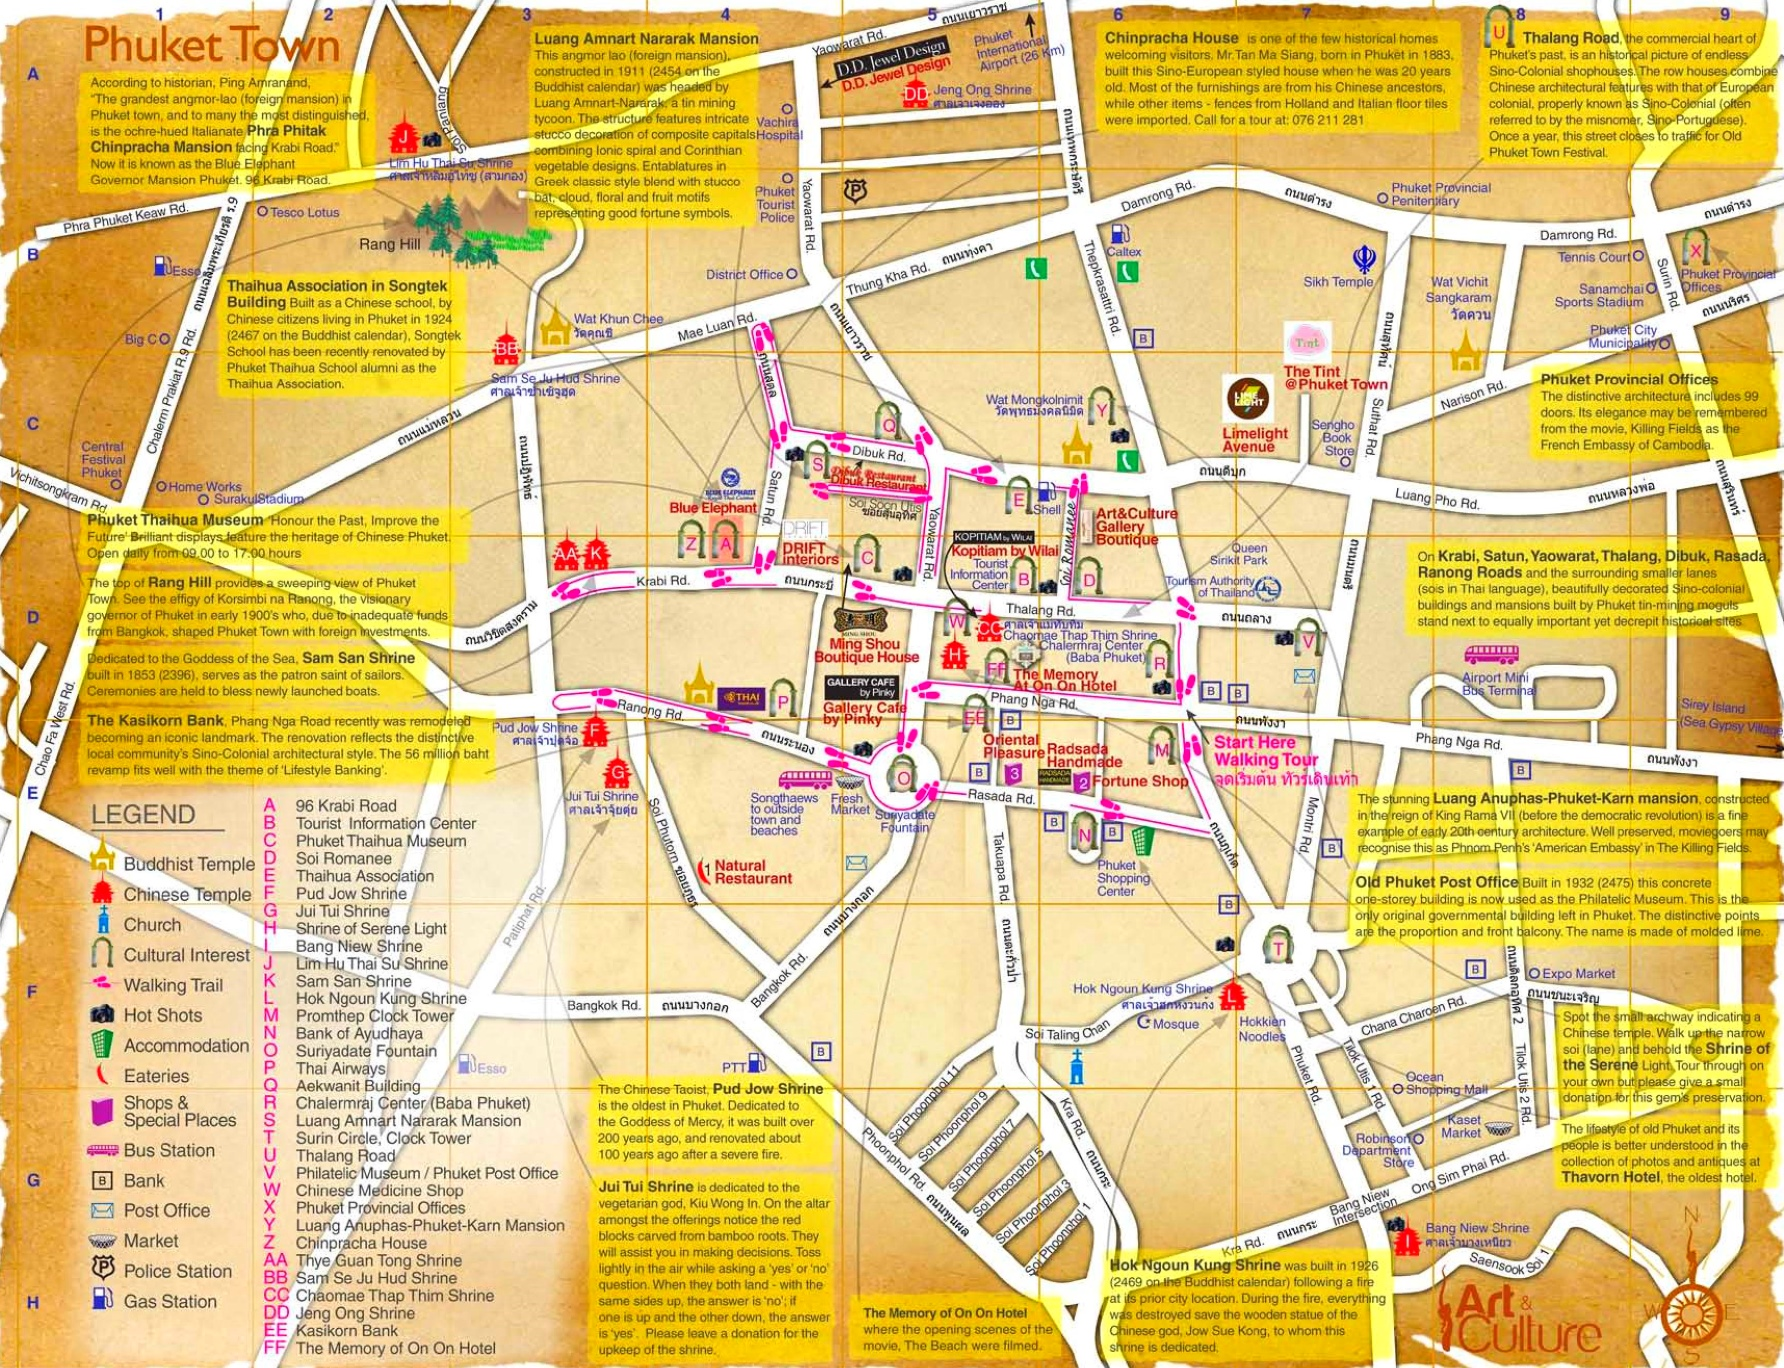 Phuket City tourist map